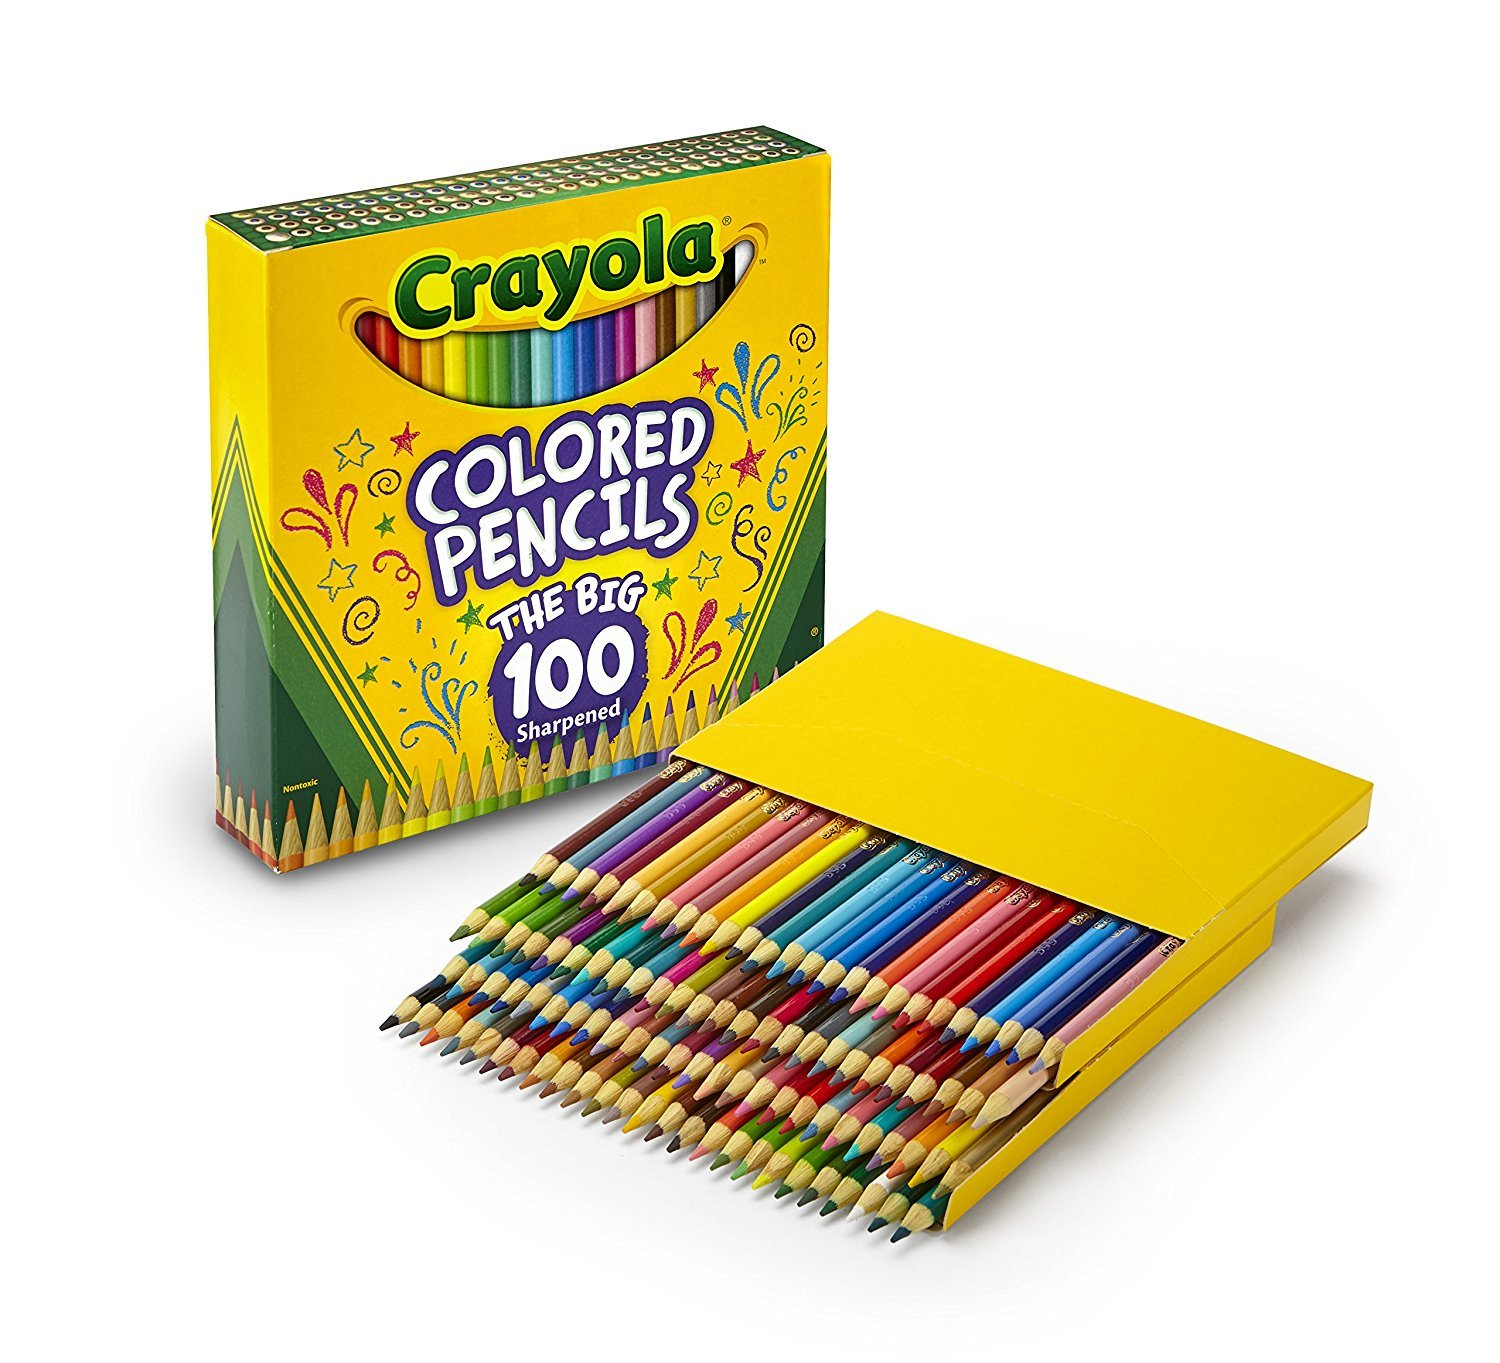 Crayola Different Colored Pencils, 100 Count, Adult Coloring by Crayola